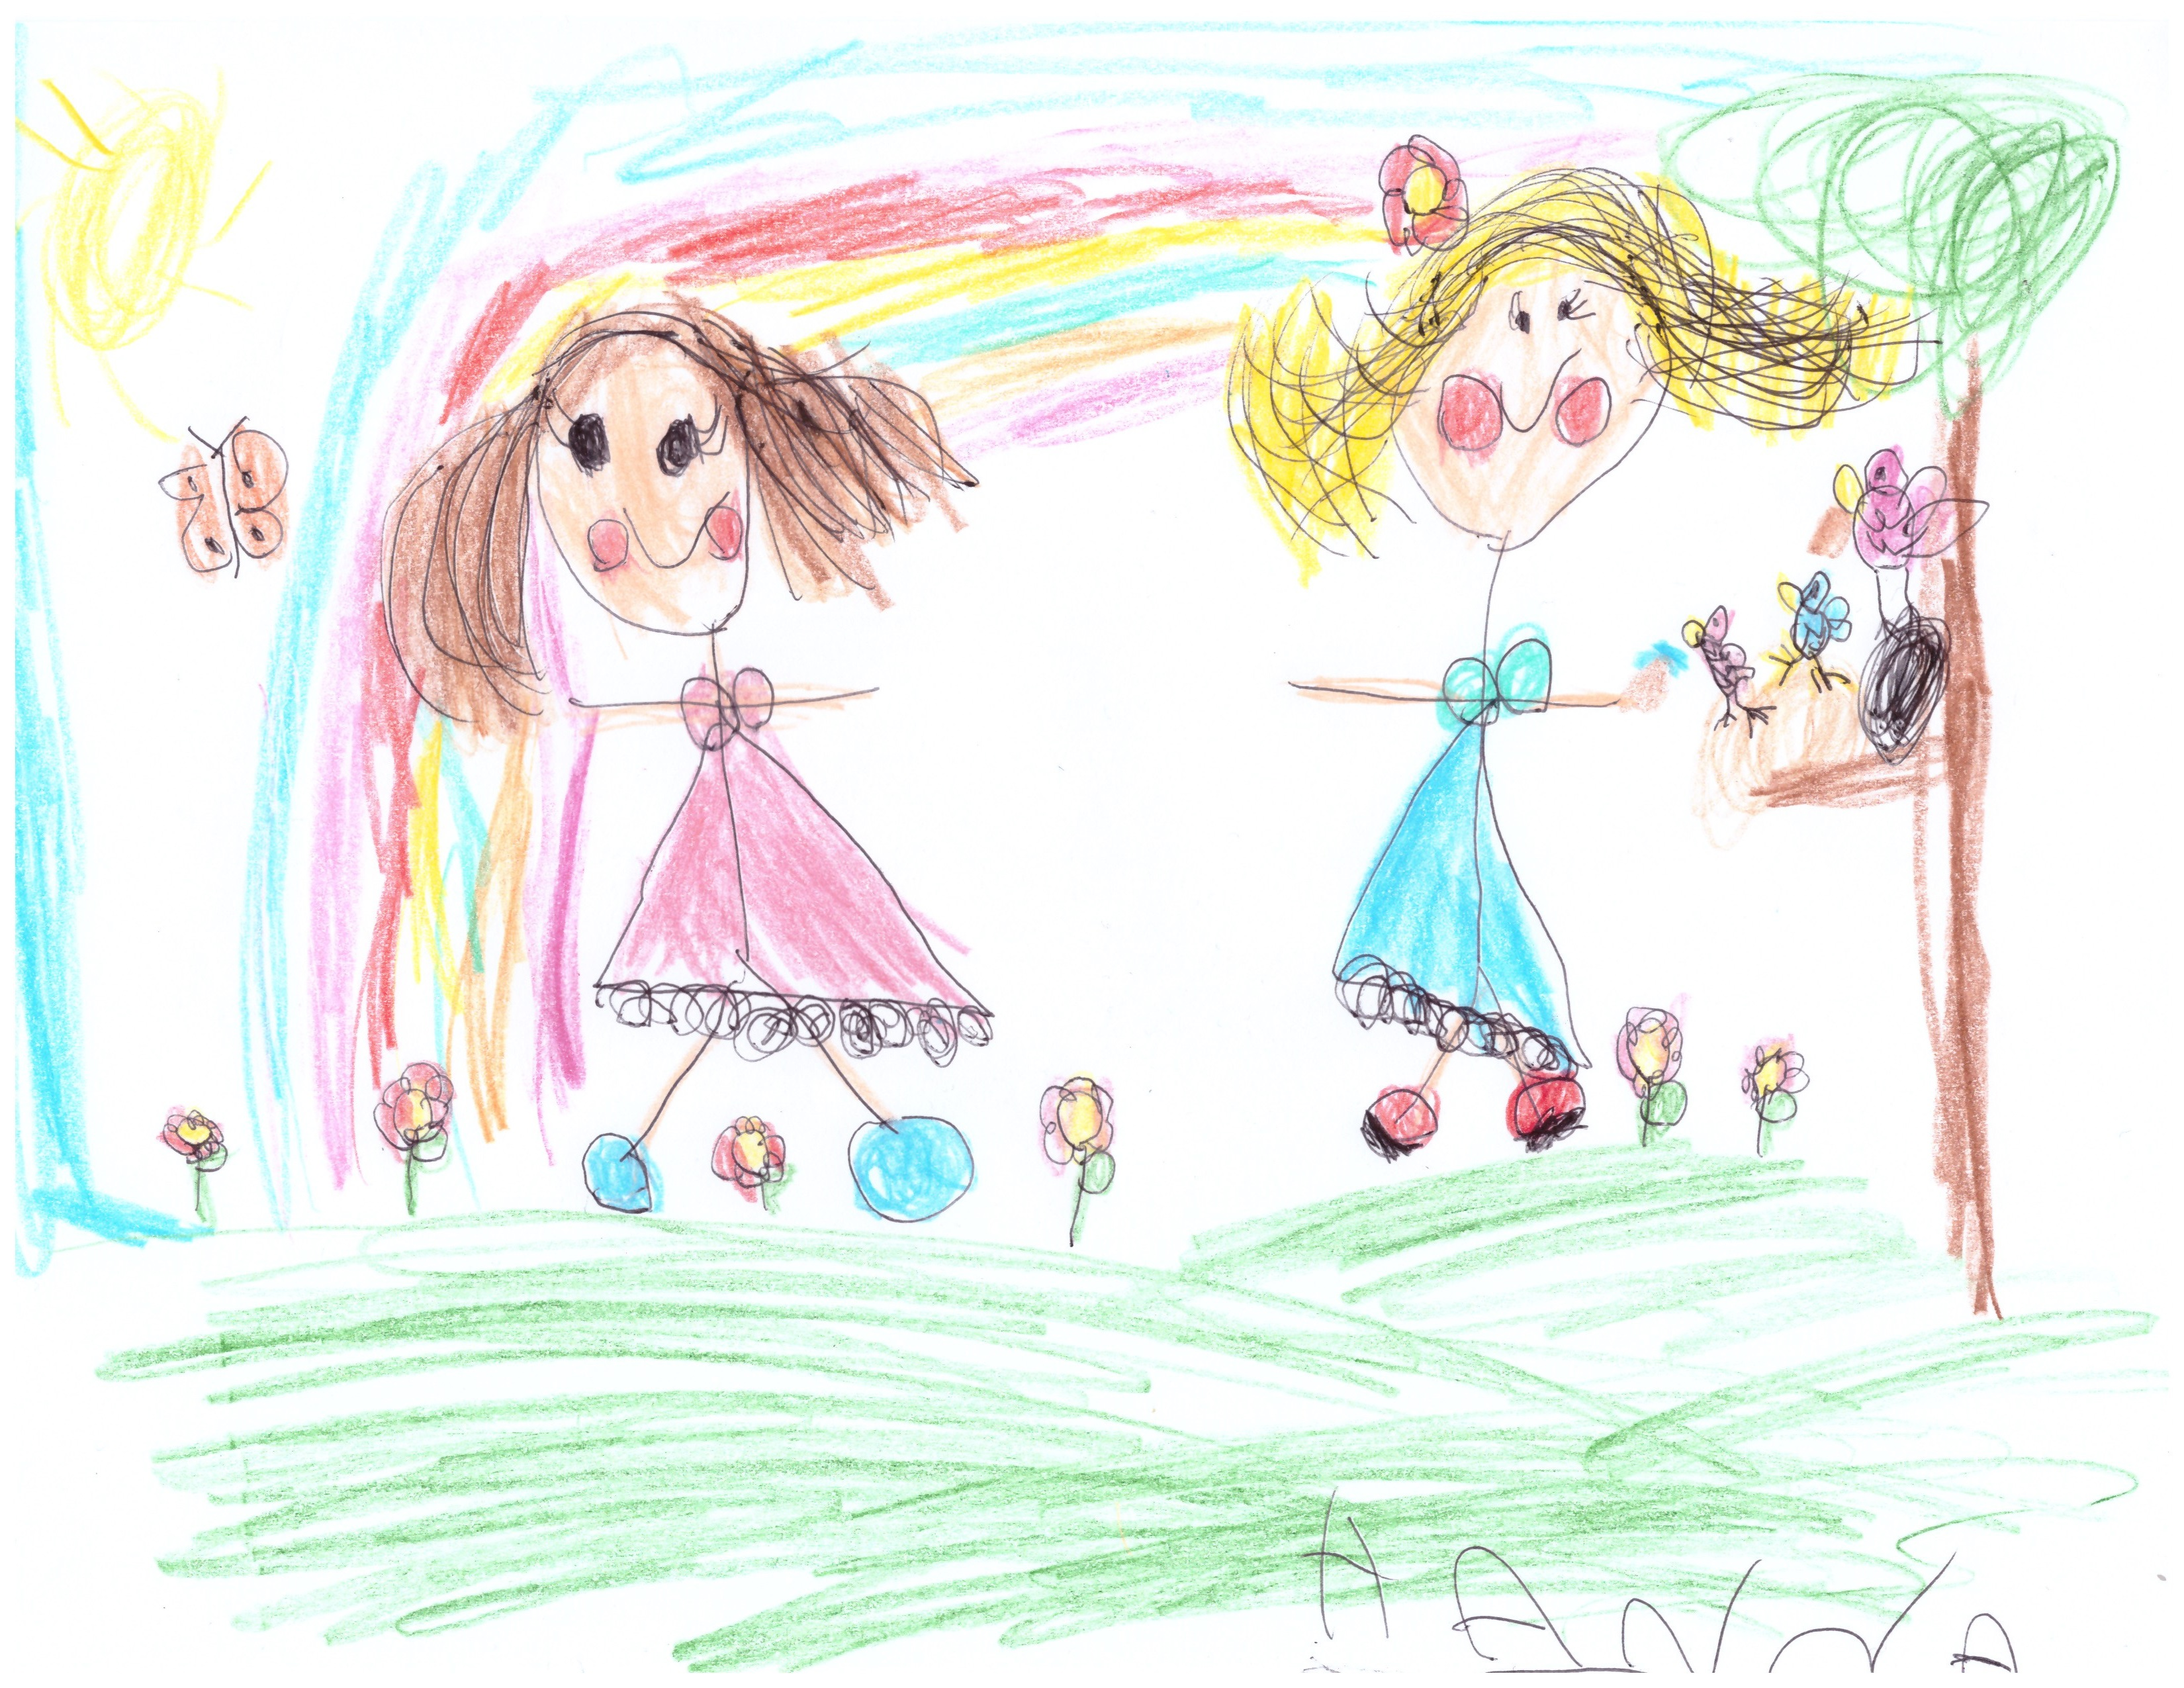 Hanna, aged 6, inspired by Thomas Gainsborough, 'The Painter's Daughters chasing a Butterfly'